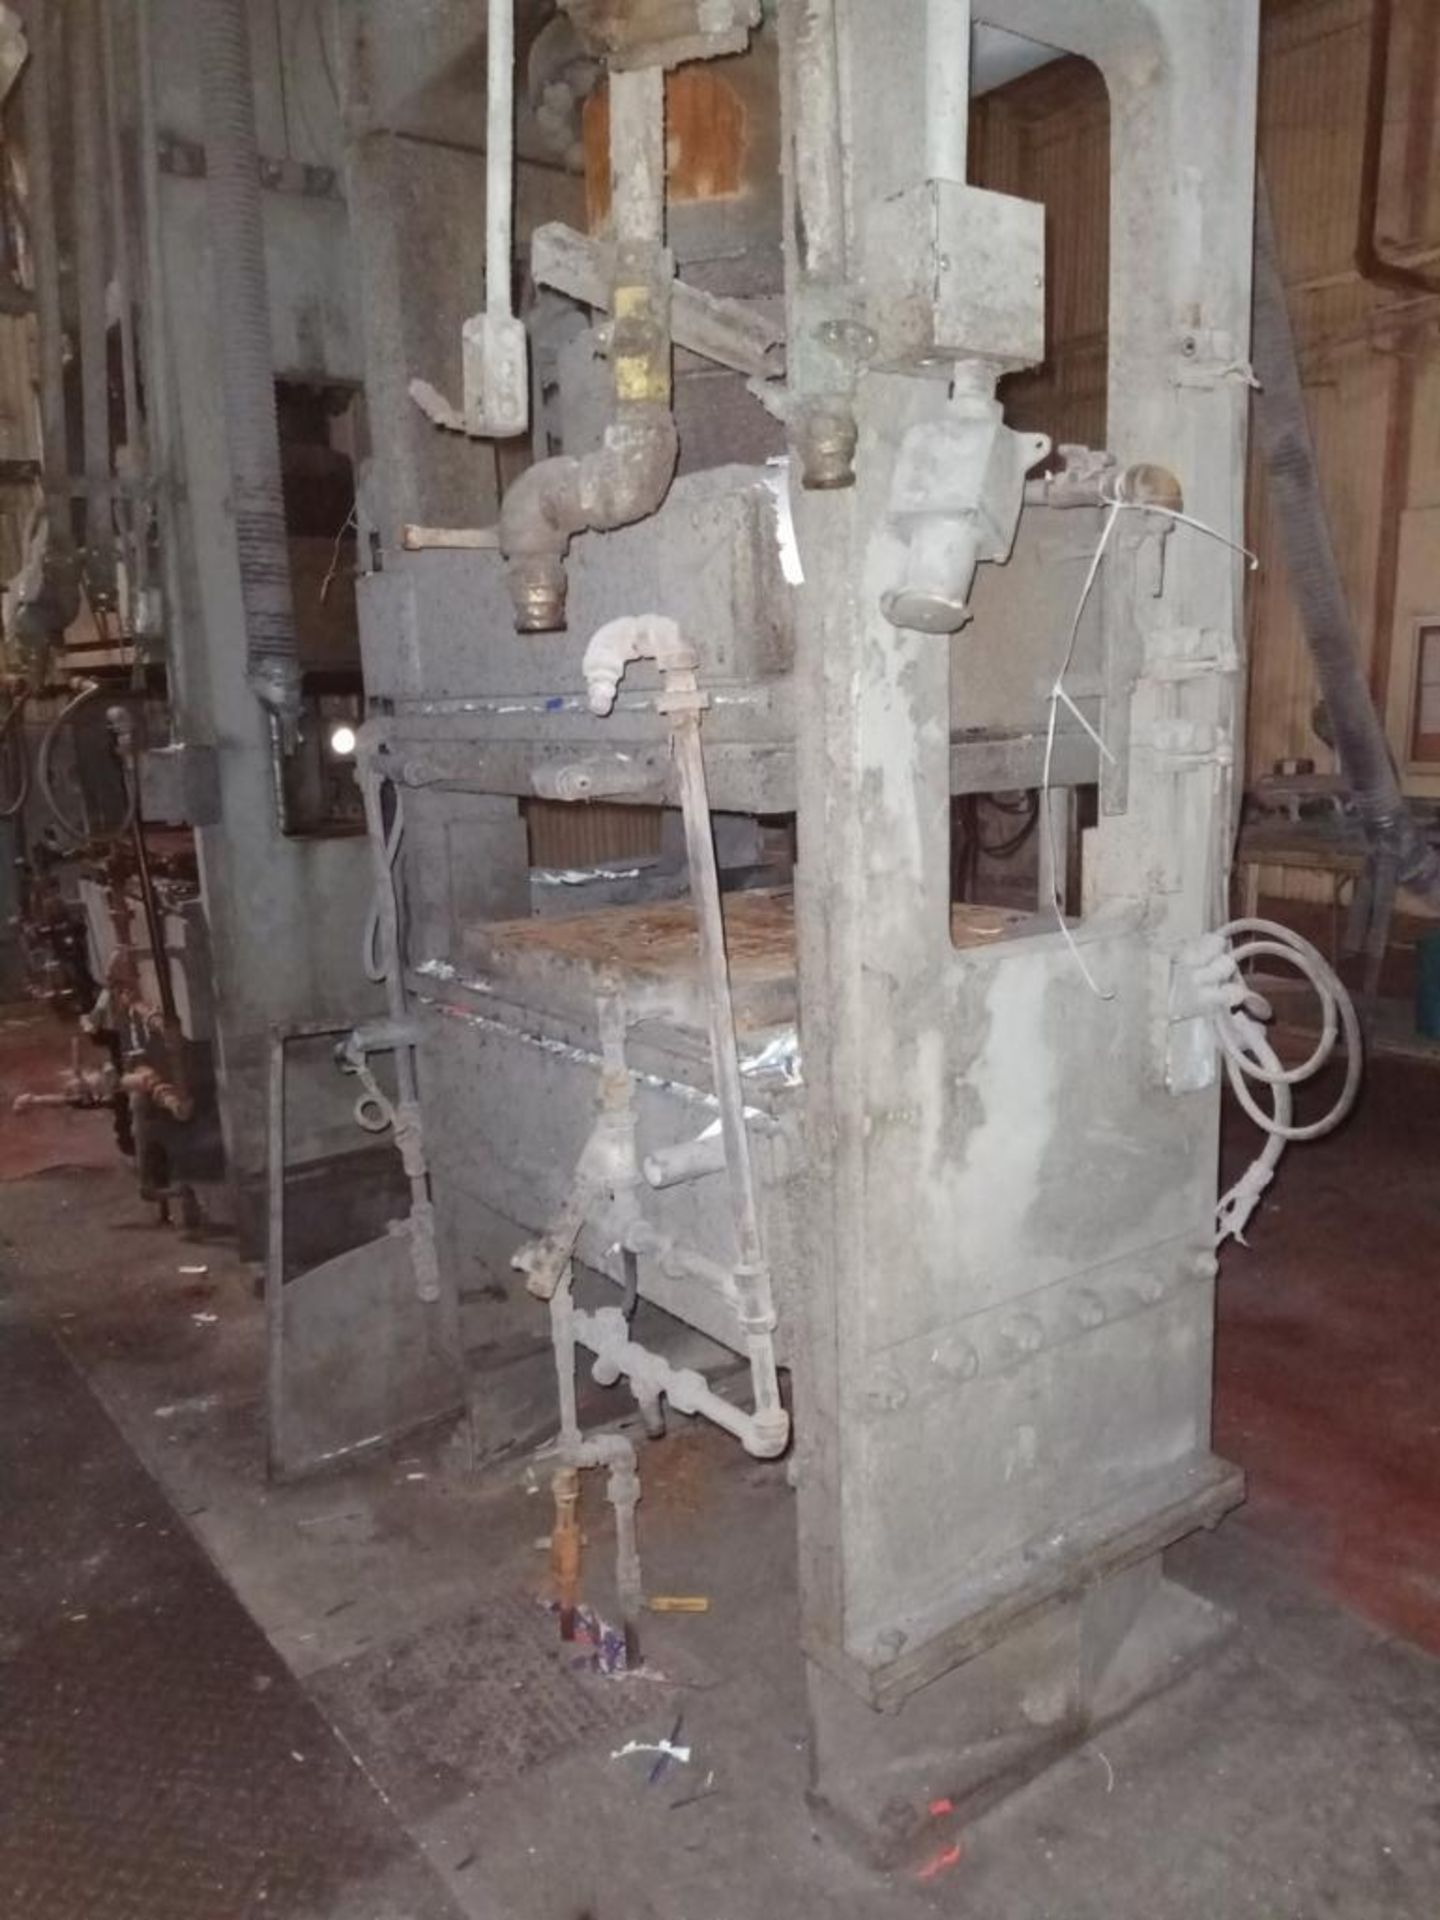 Lot 60 - French 400T 4-Post Compression Molding Press